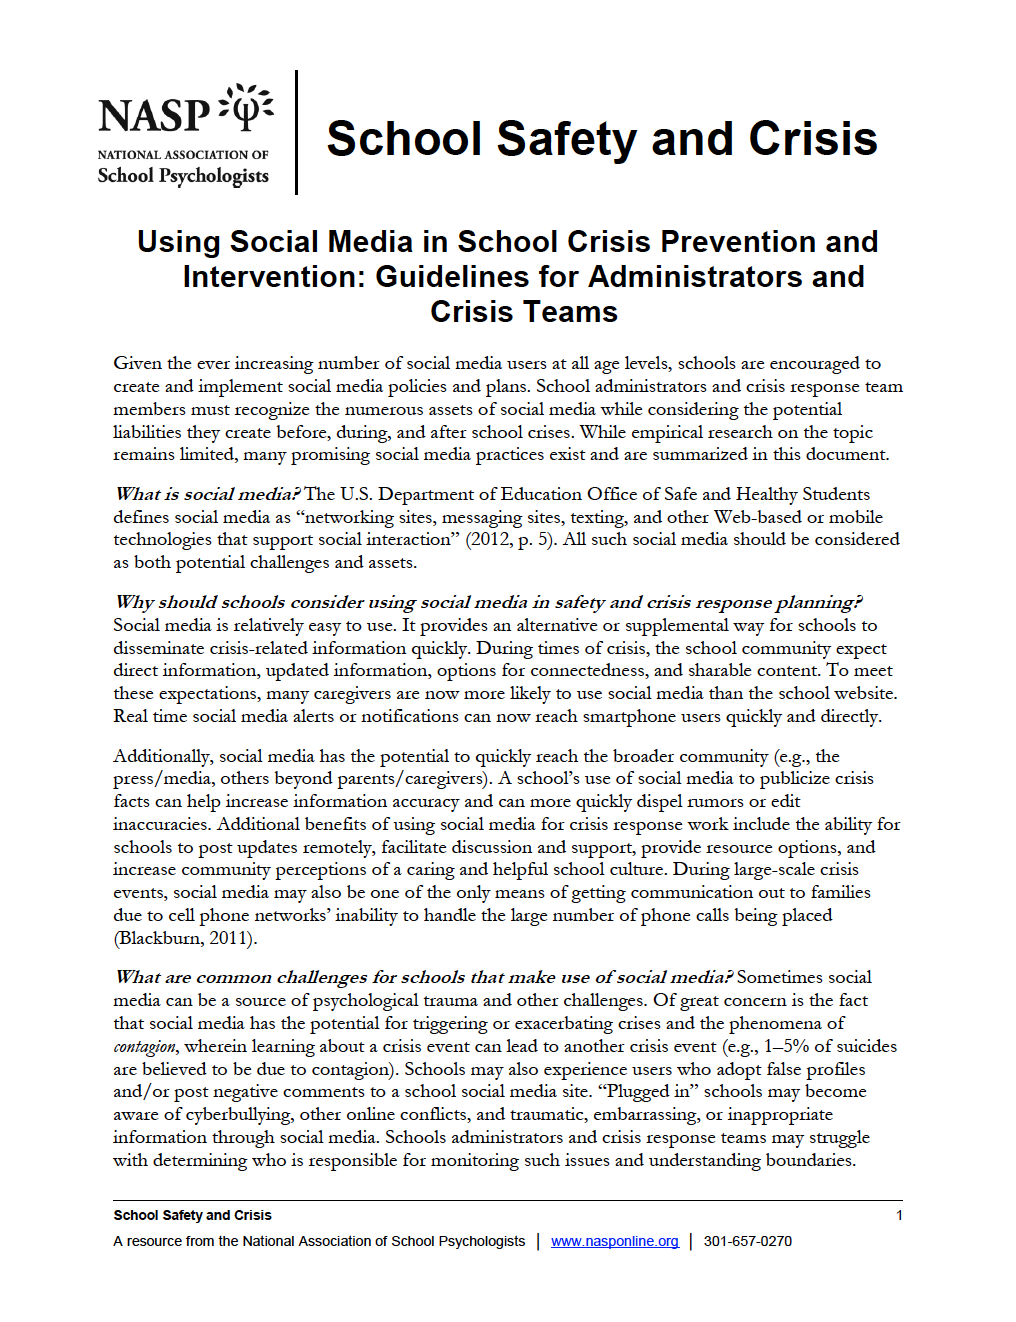 Using Social Media In School Crisis Prevention And Intervention